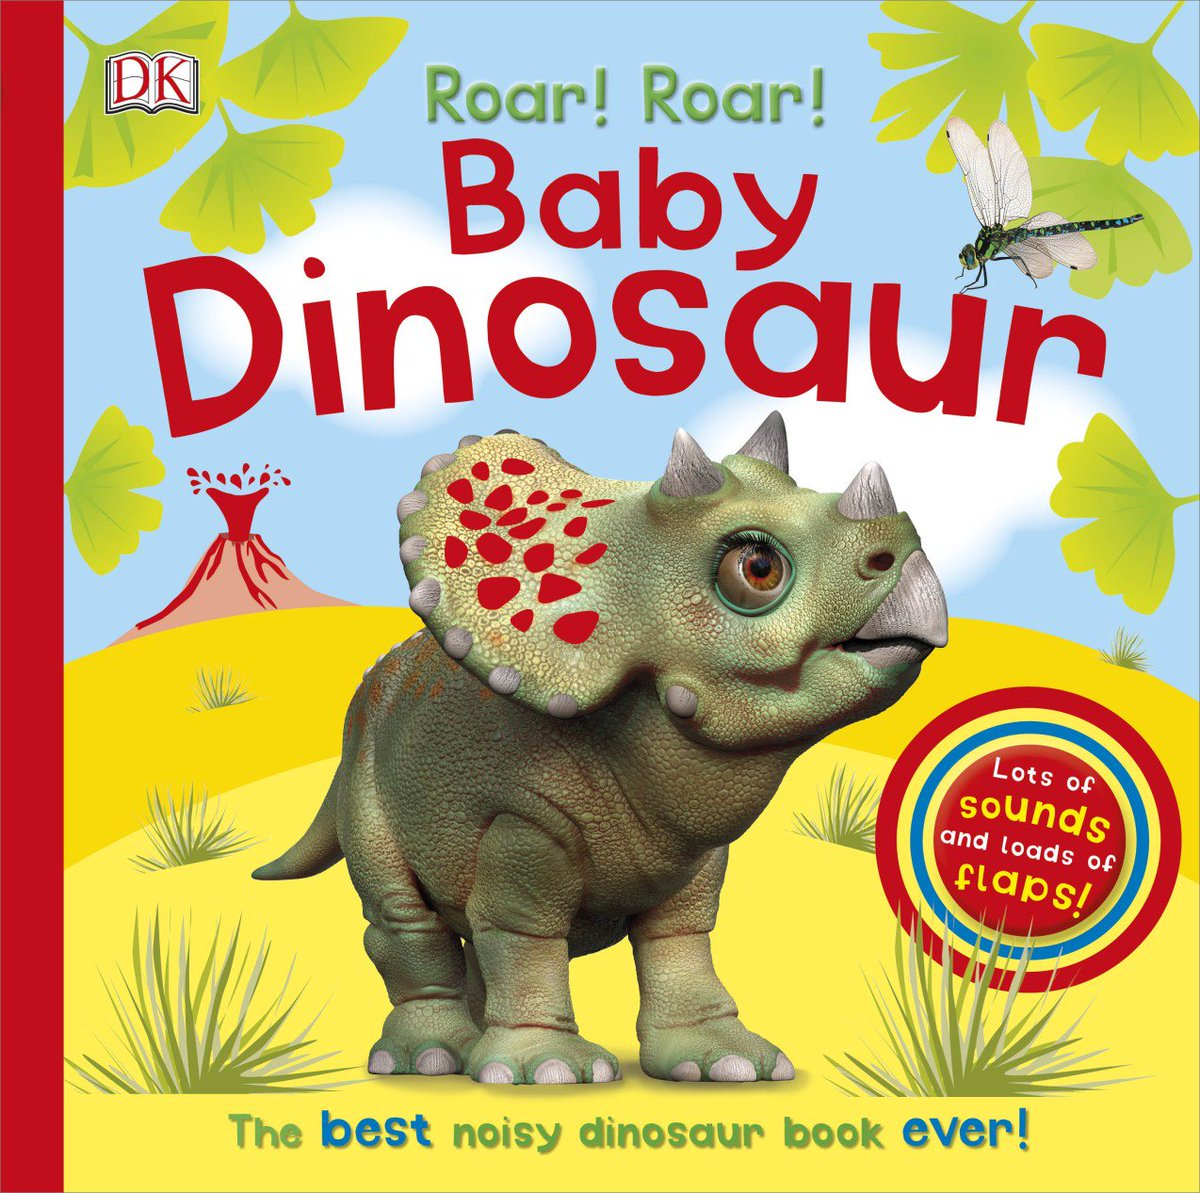 Happy Friday! Re-tweet and follow for your chance to win 1 of 5 Roar! Roar! Baby Dinosaur books. Ends 4pm today https://t.co/YTMqXAtEh9